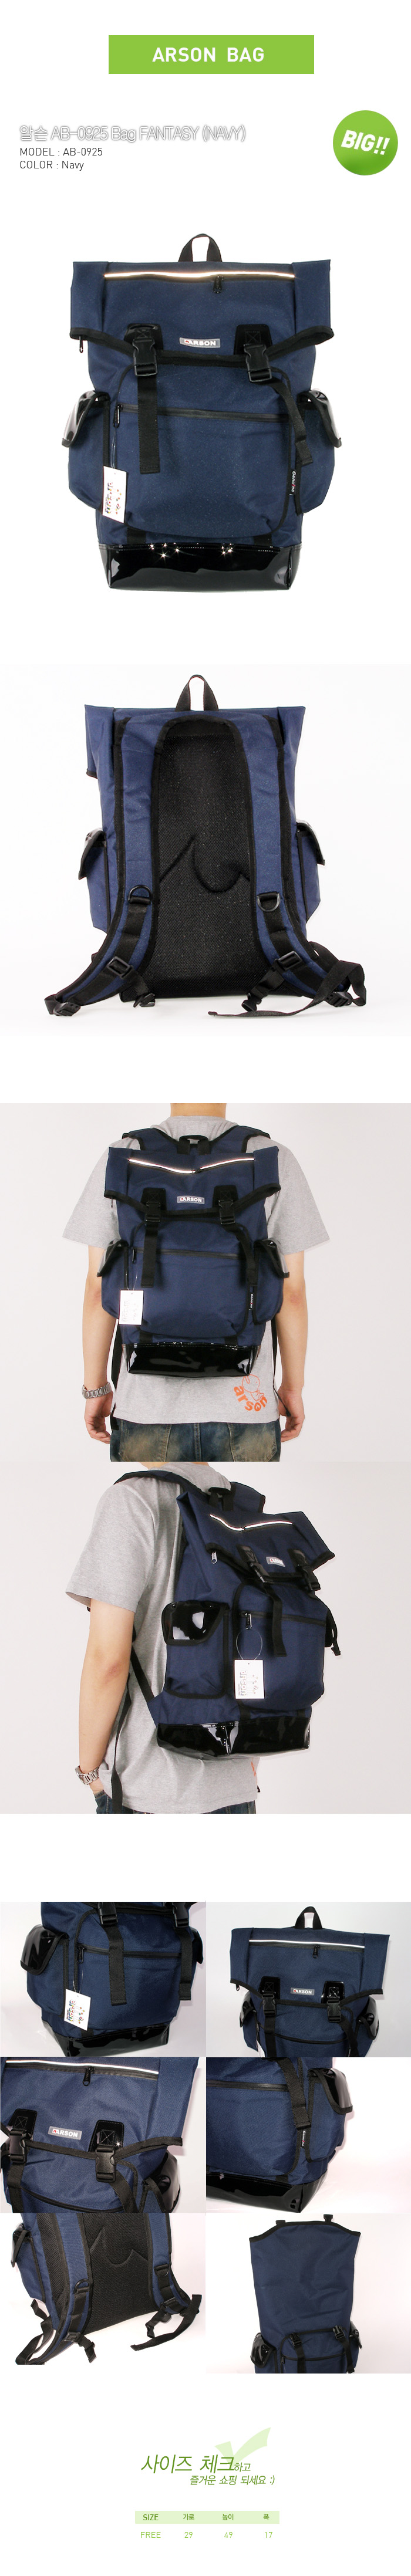 [ ARSON ] AB-0925 (Navy)/Backpack School Bag